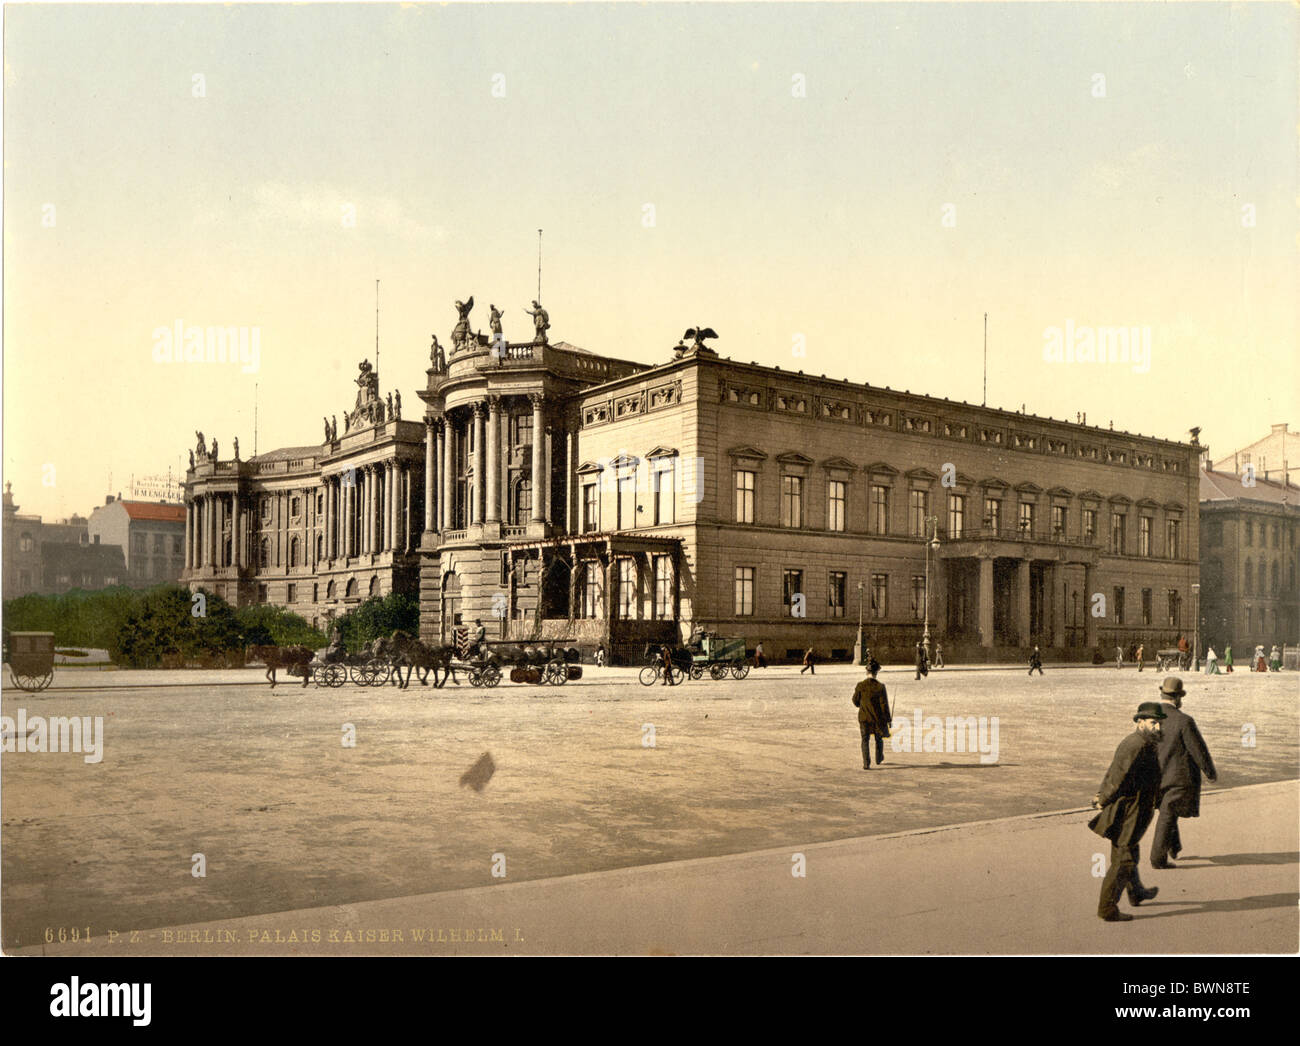 Berlin Palace of William Germany Europe Photochrom about 1900 German Empire history historical historic Wilh - Stock Image